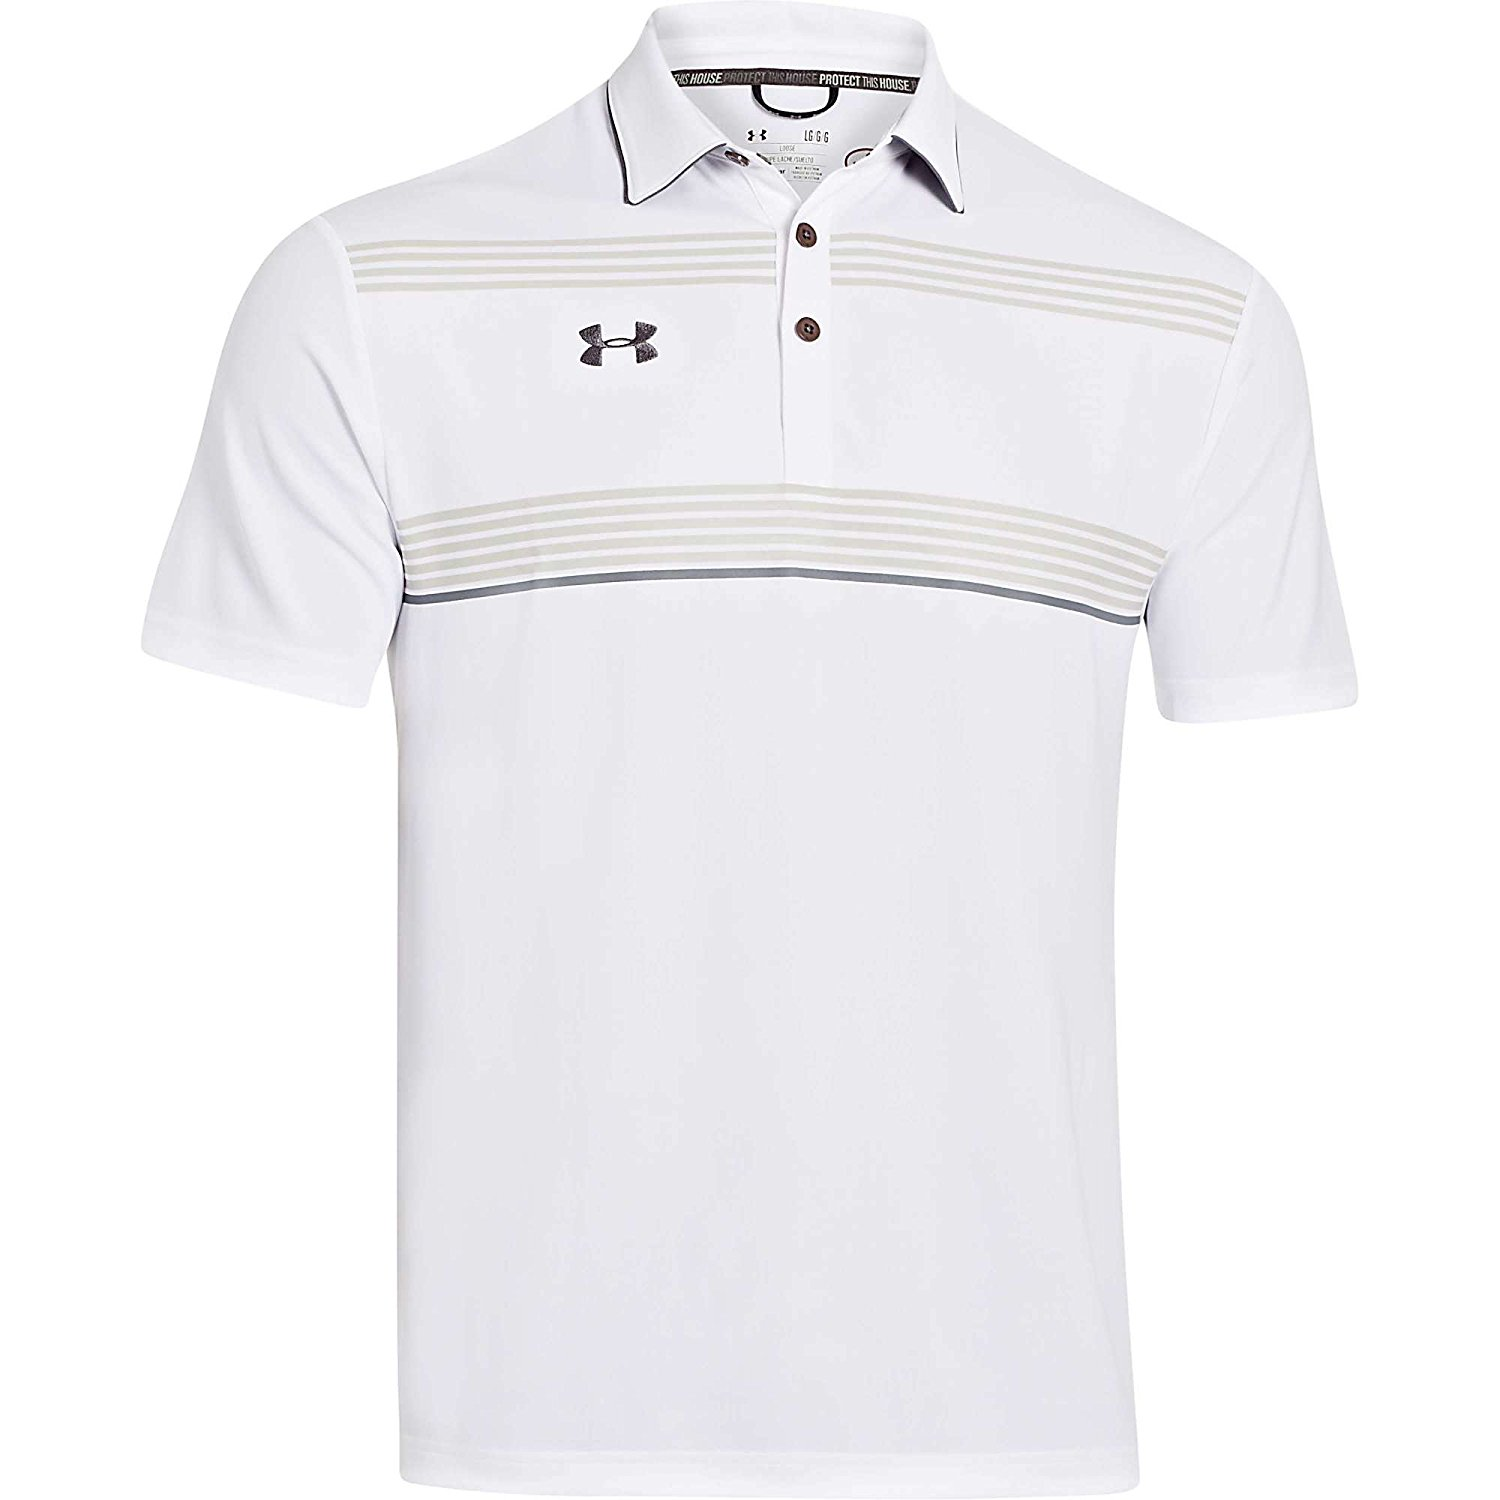 aaa8b240c3d6fe Get Quotations · Under Armour Men s Conquest On-Field Polo Shirts Small  White Steel Graphite